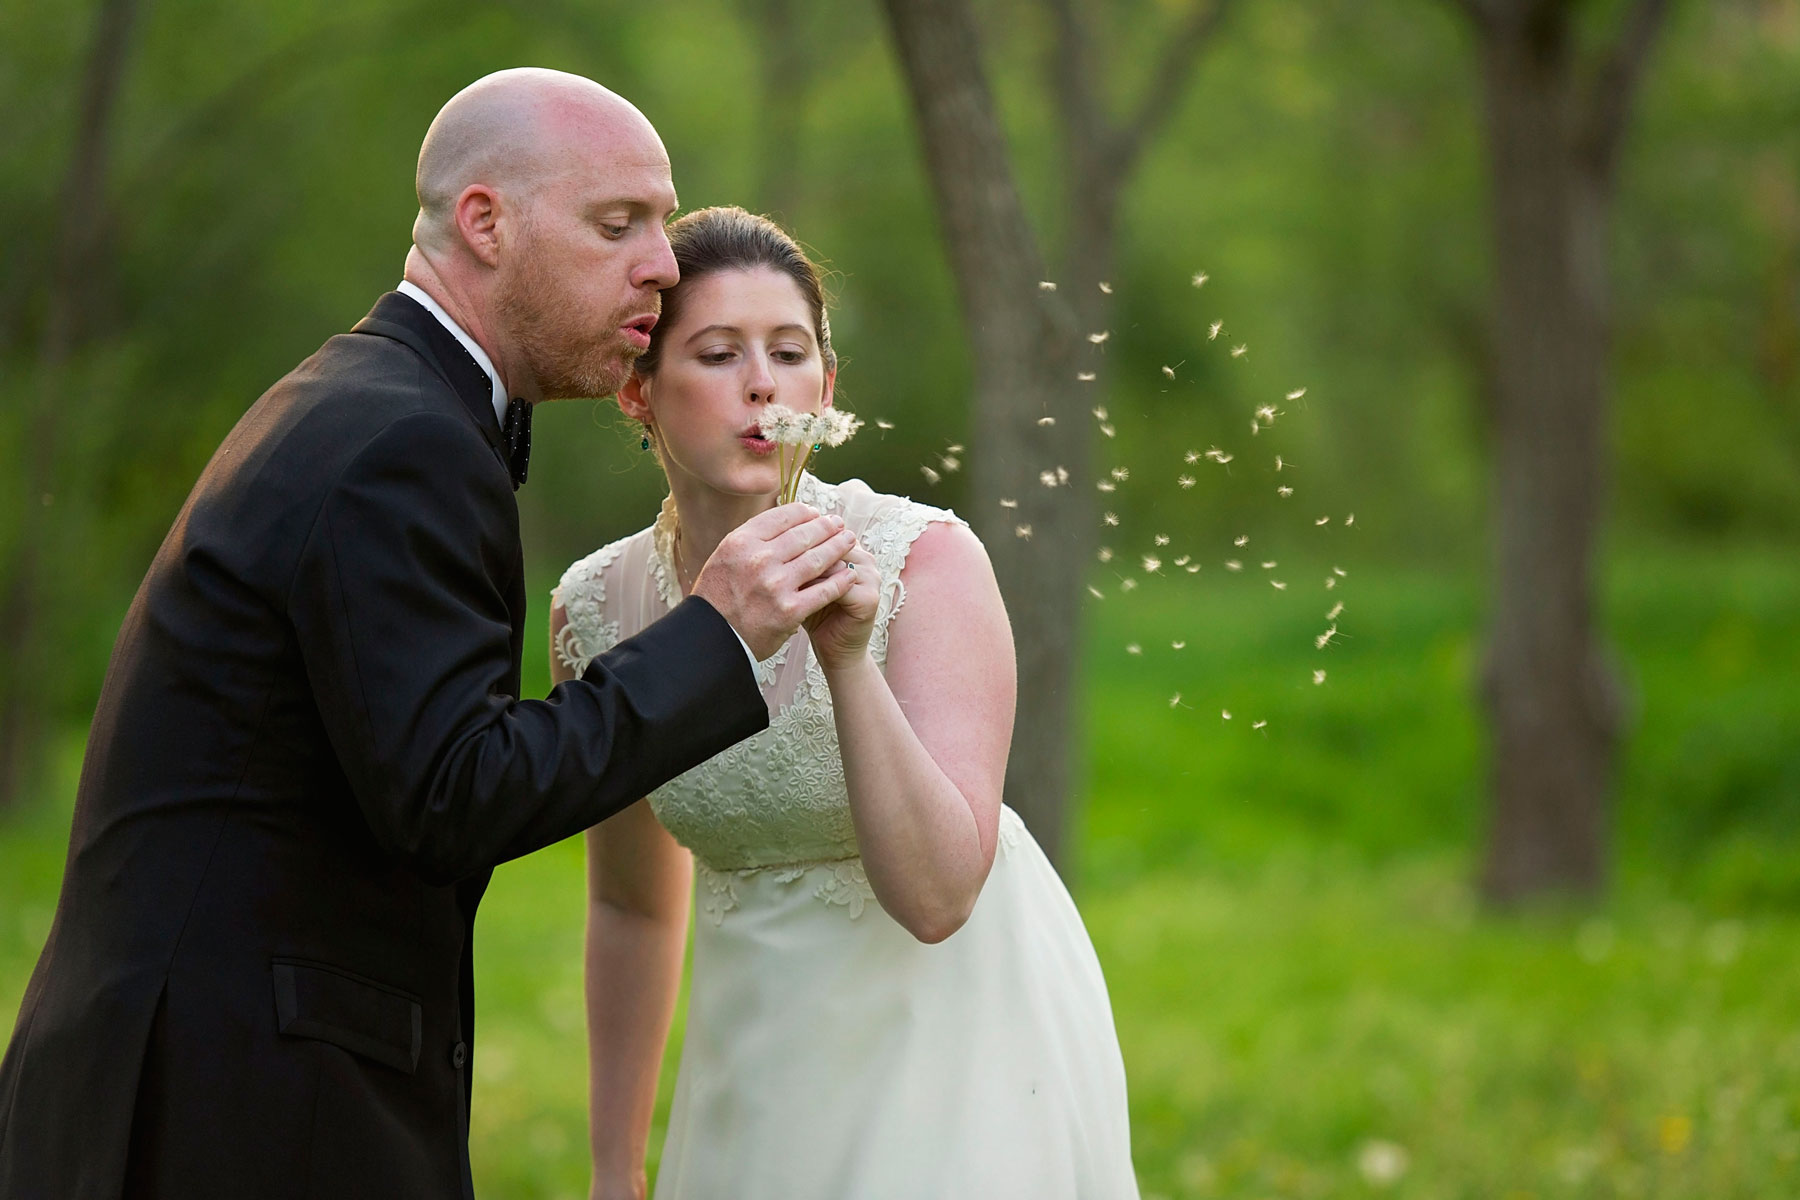 bride and groom make a wish together